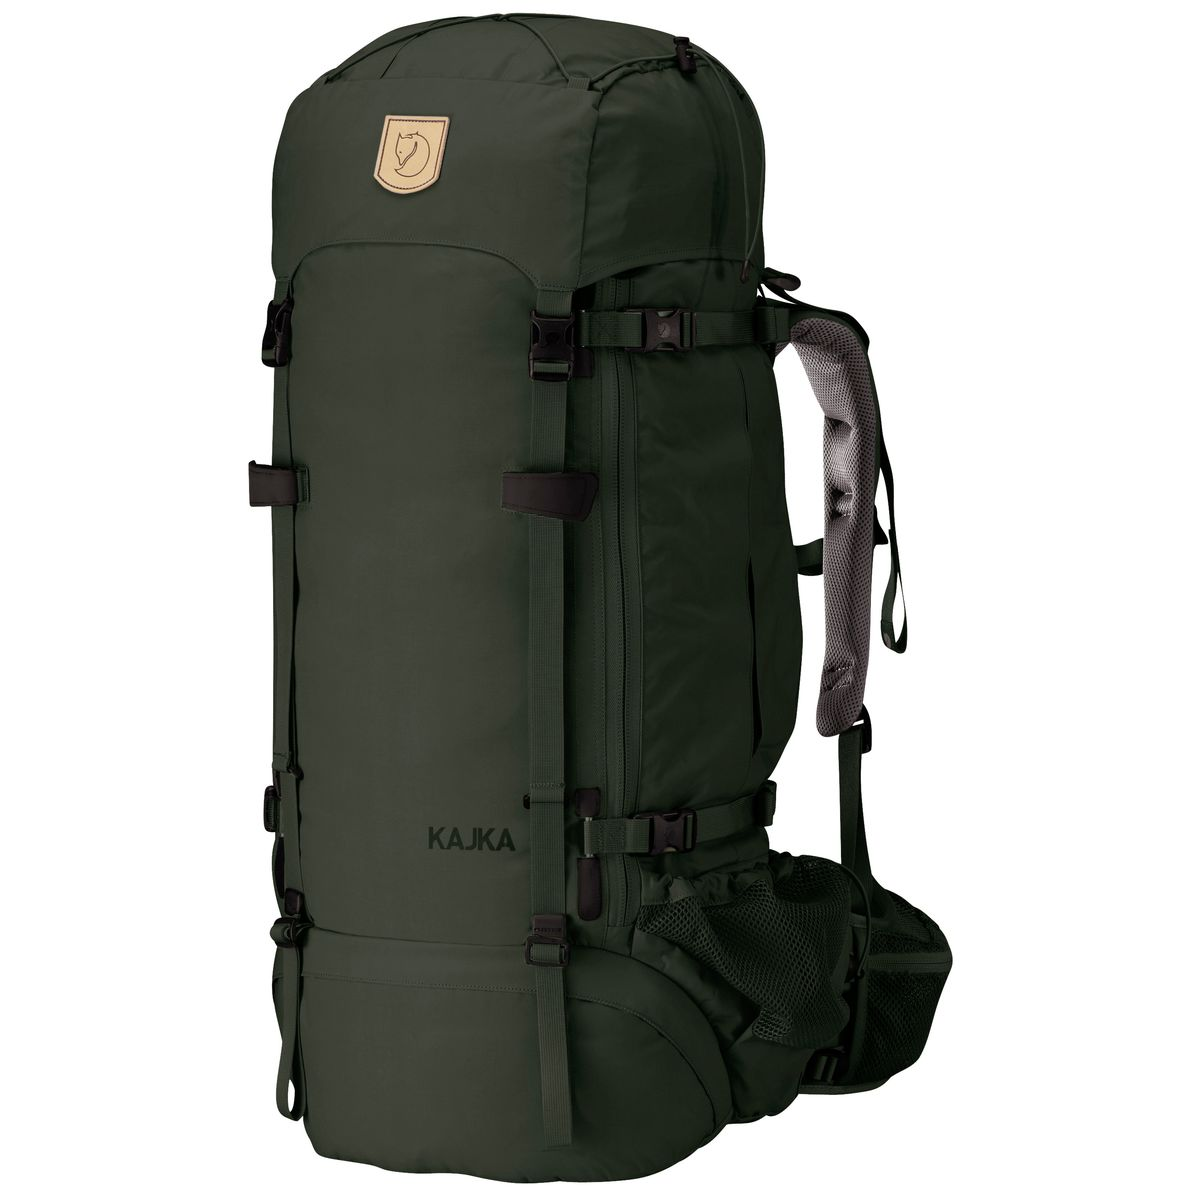 photo: Fjallraven Kajka 85 expedition pack (70l+)